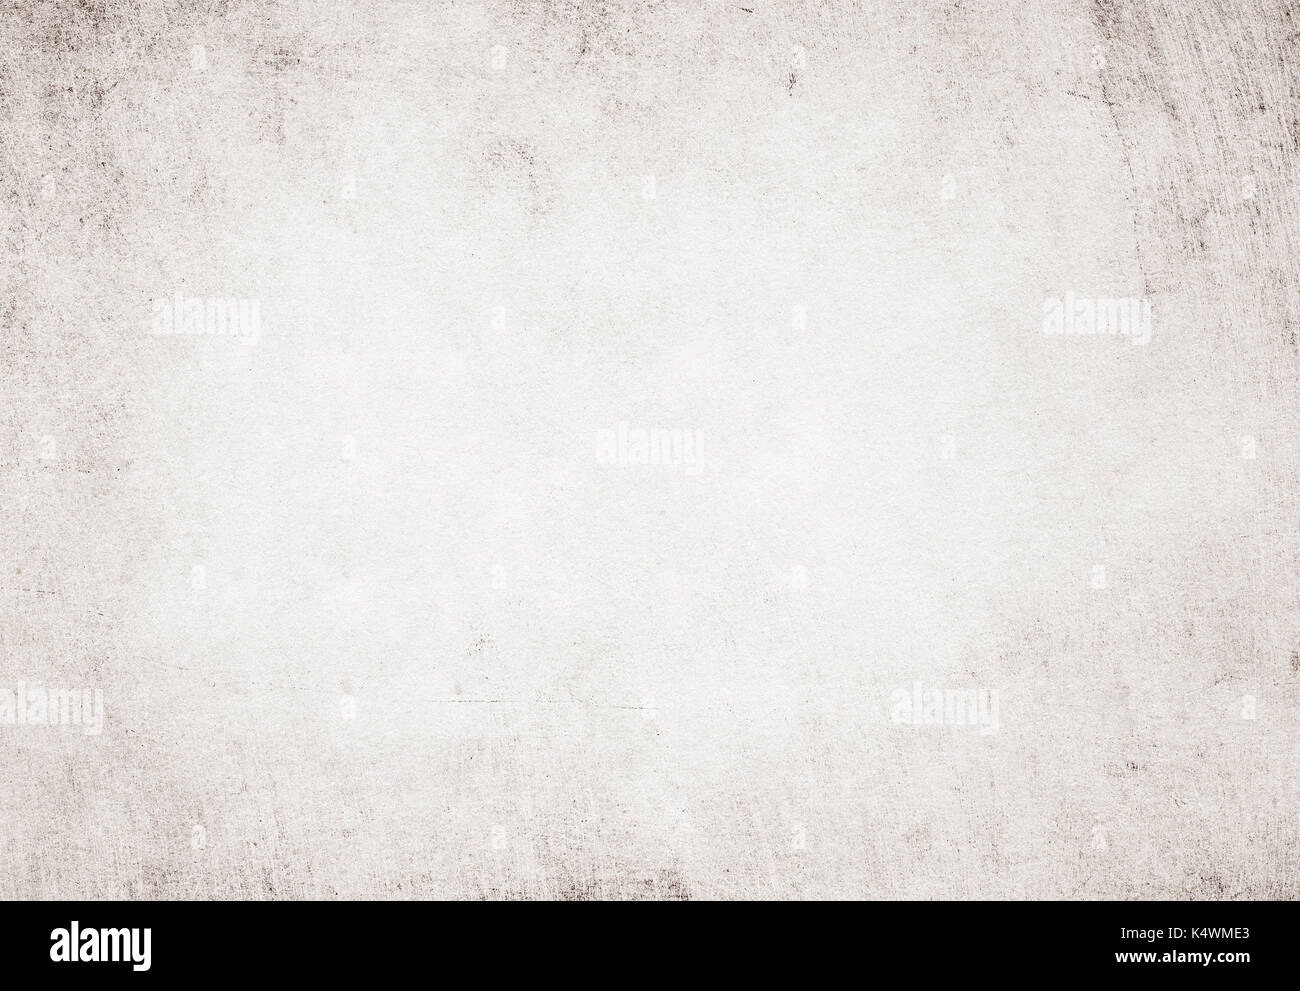 Light grunge white recycled parchment paper texture. - Stock Image